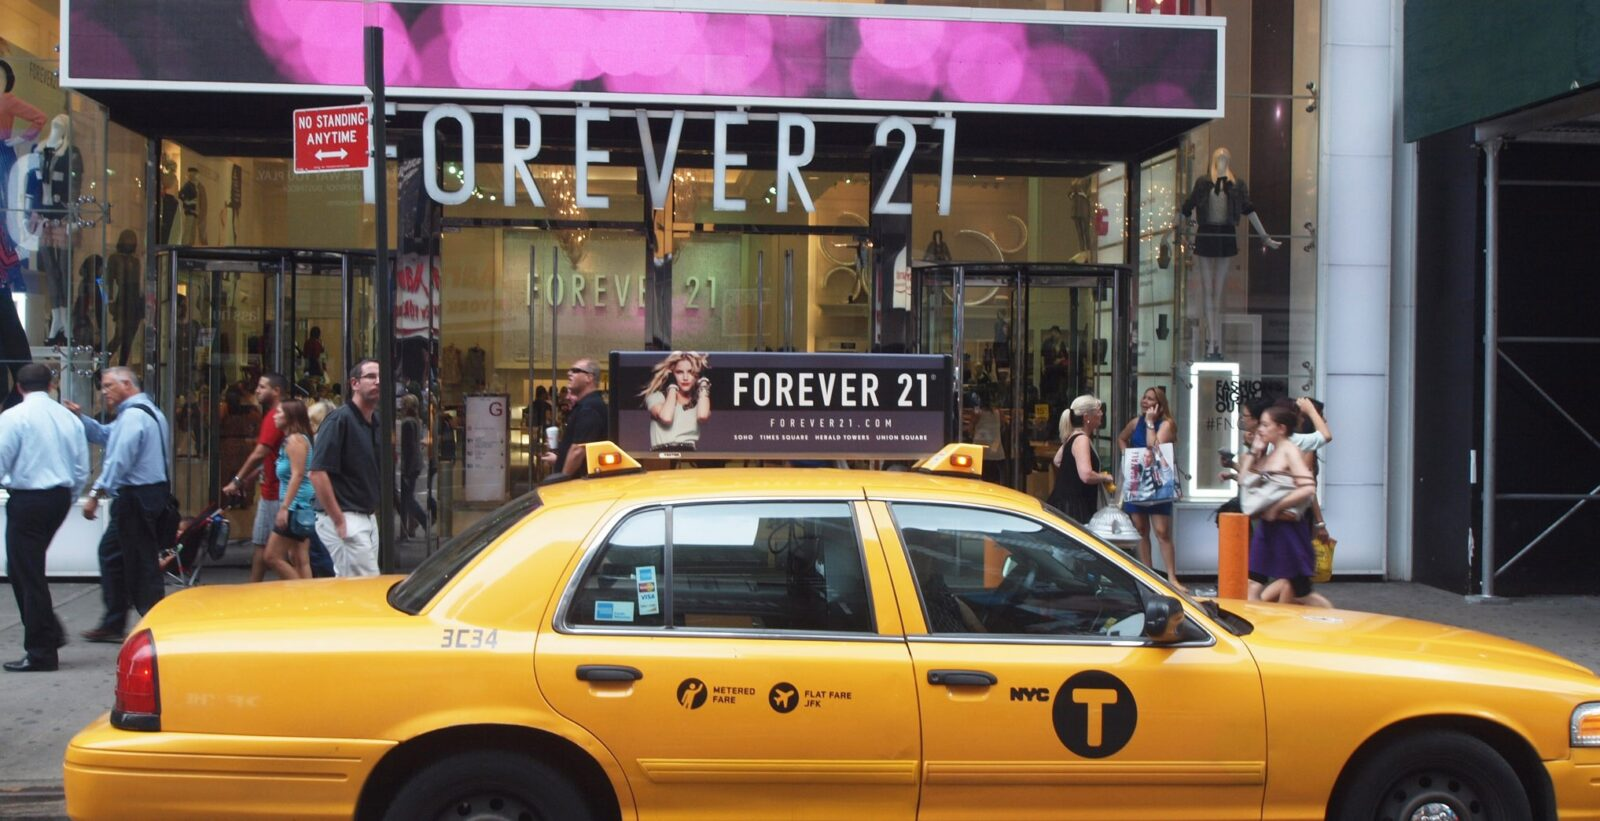 Forever 21 Taxi Top Advertising